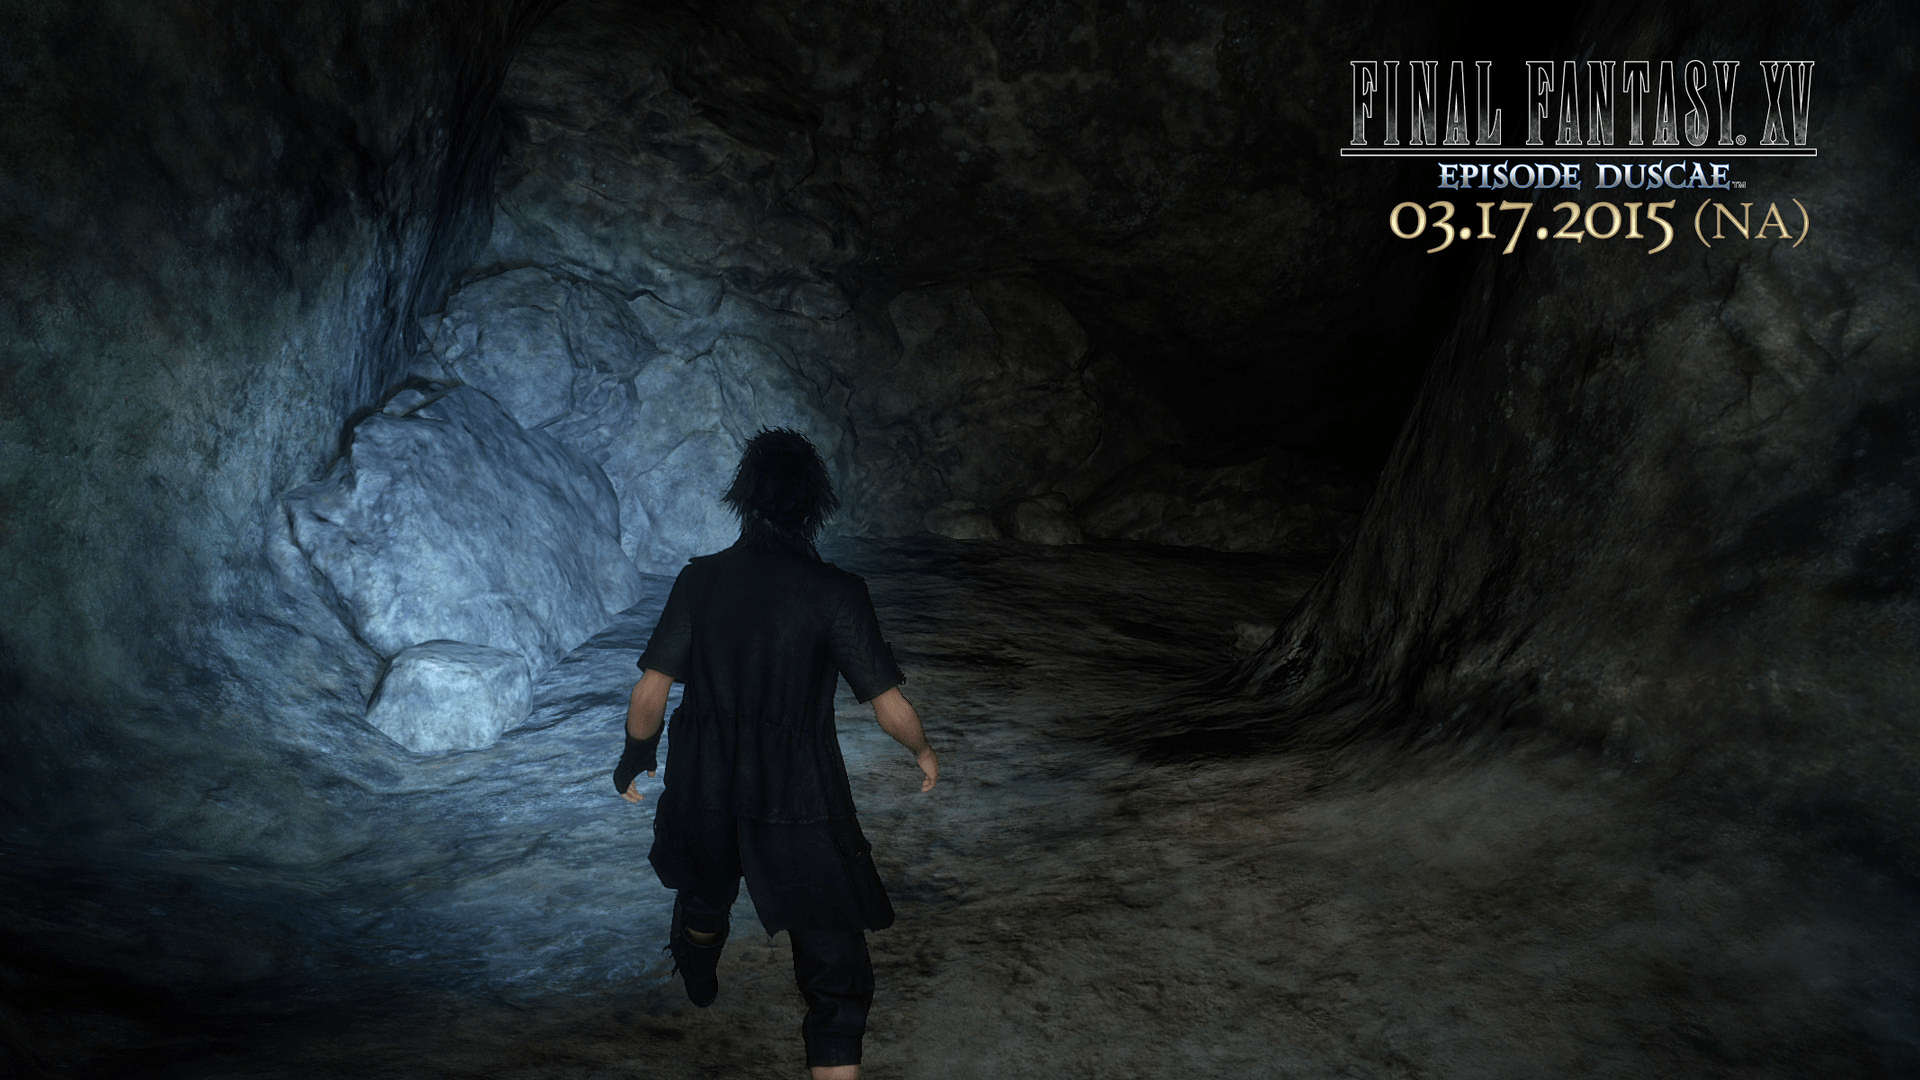 http://i1.wp.com/gearnuke.com/wp-content/uploads/2015/02/final-fantasy-xv-feb-screens-3.png?resize=1920%2C1080?w=534